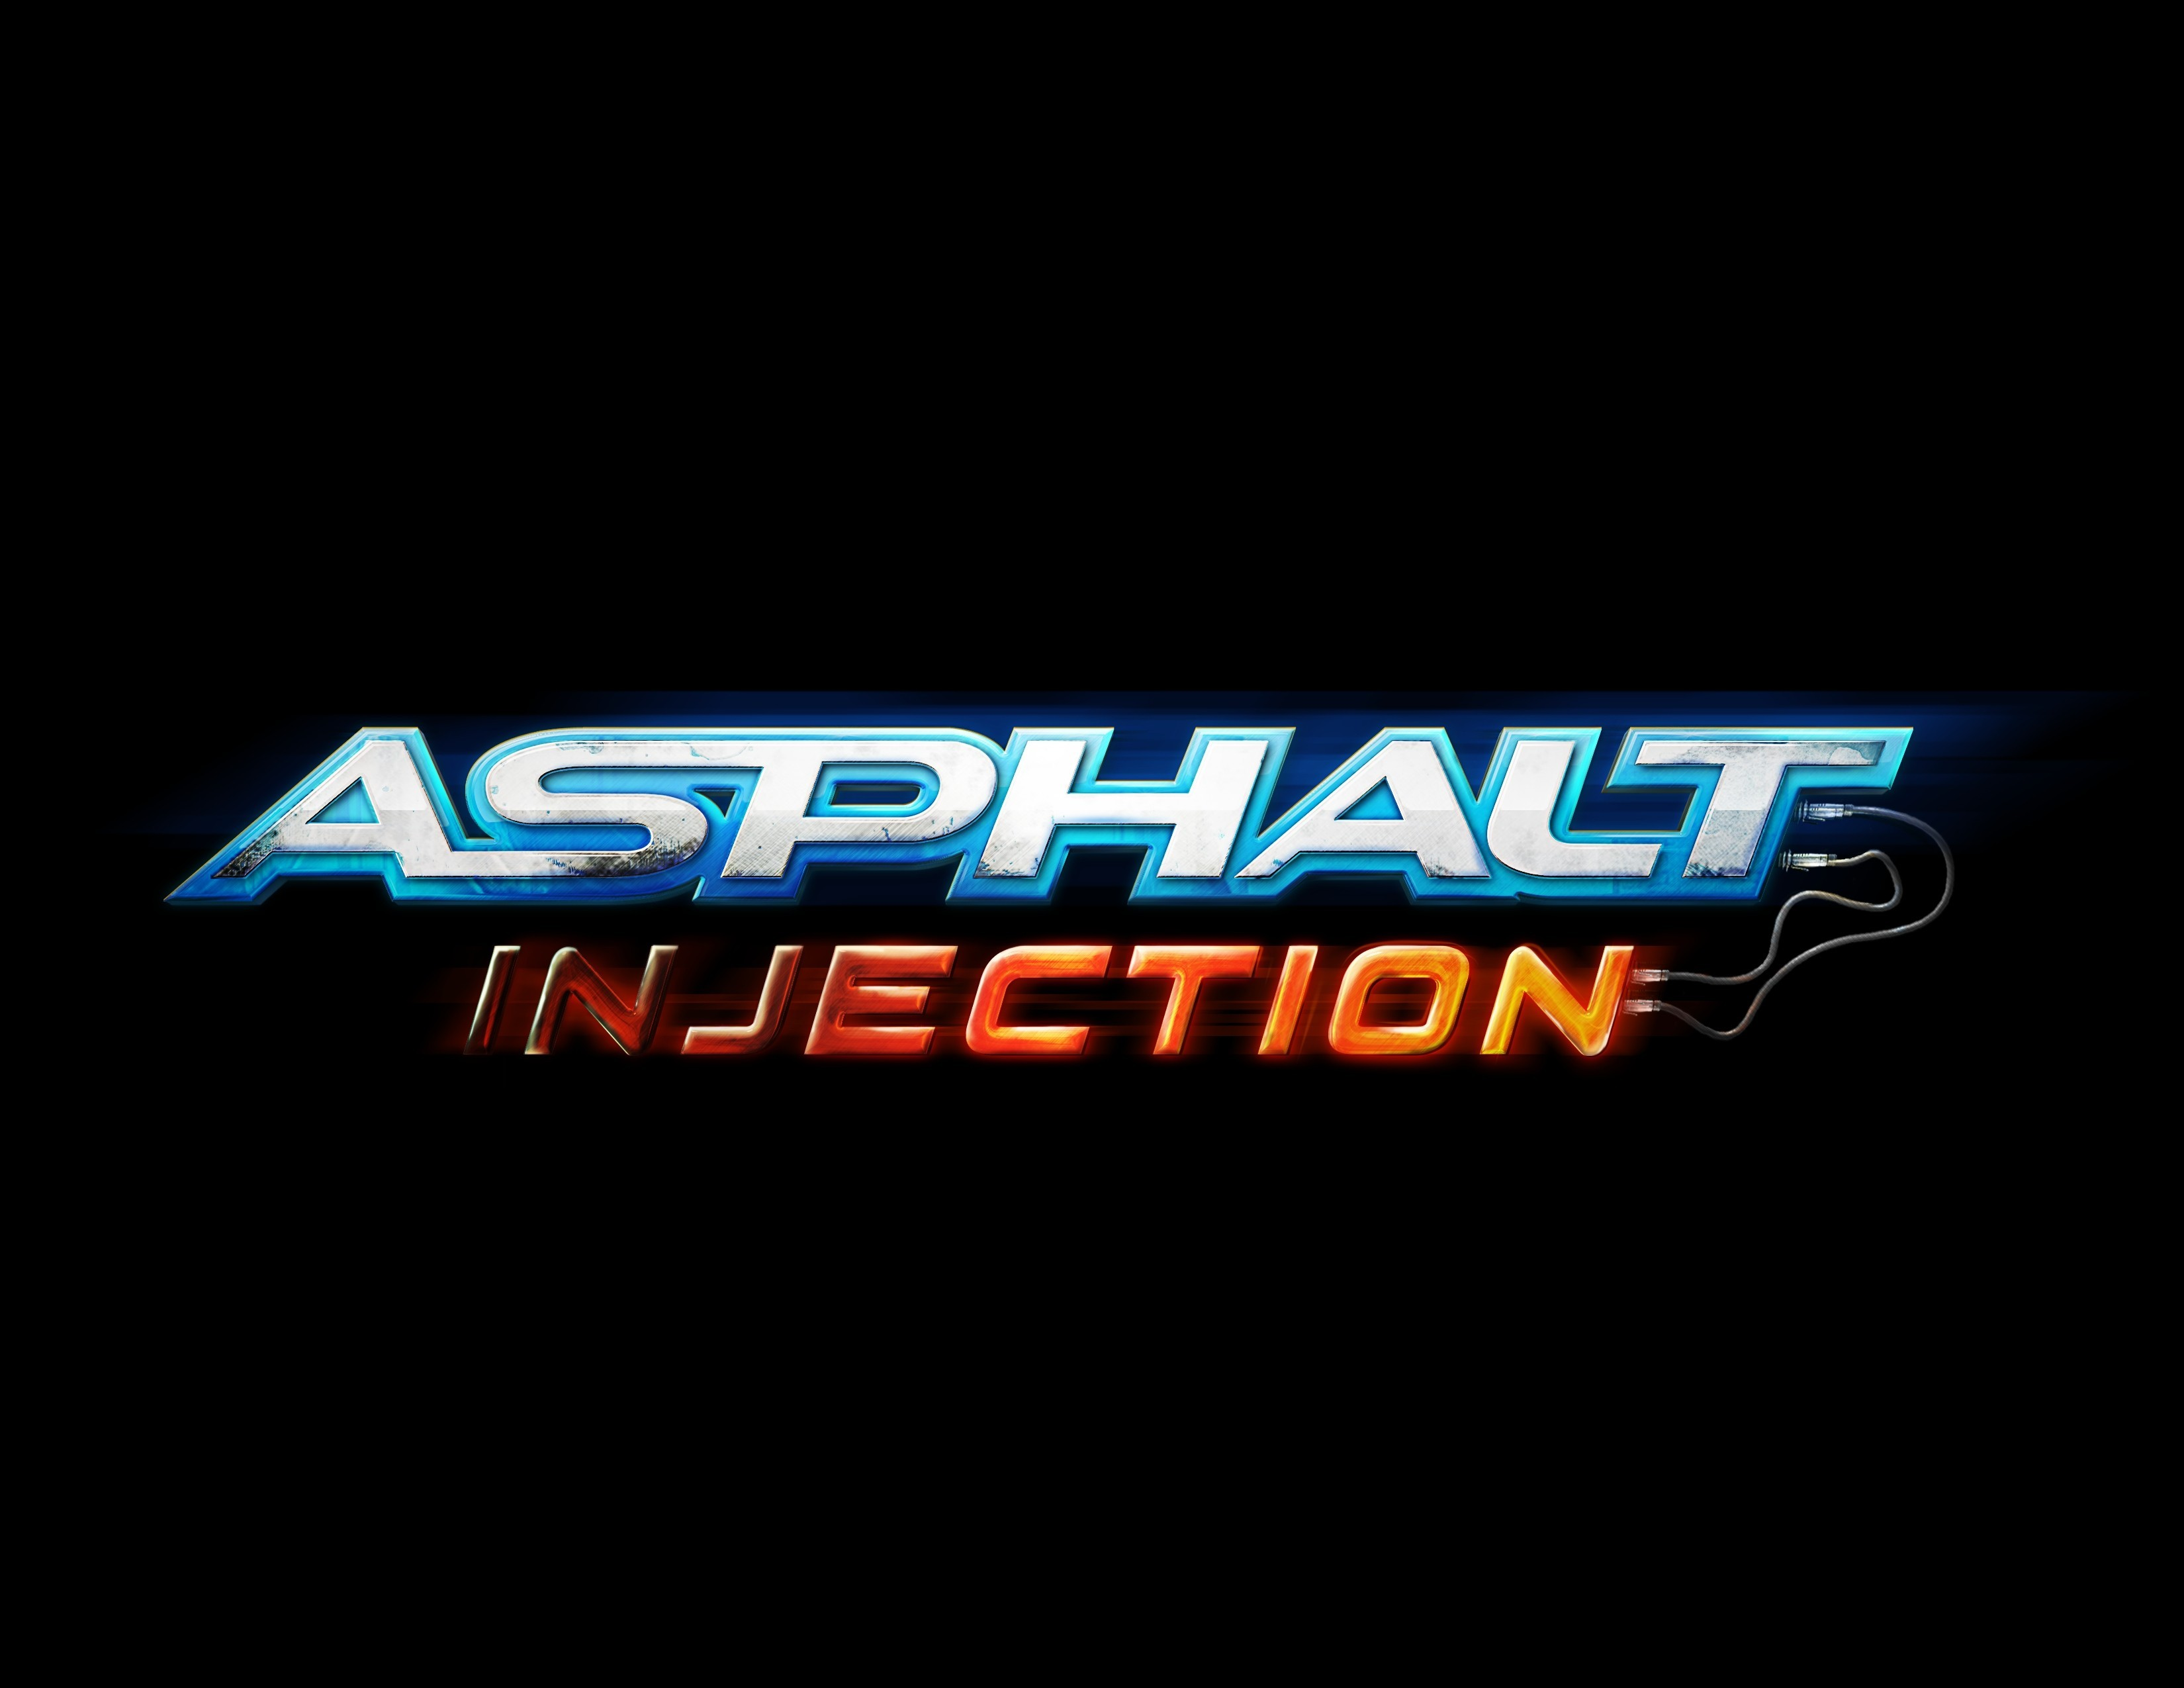 Artwork1 de Asphalt Injection - galerie